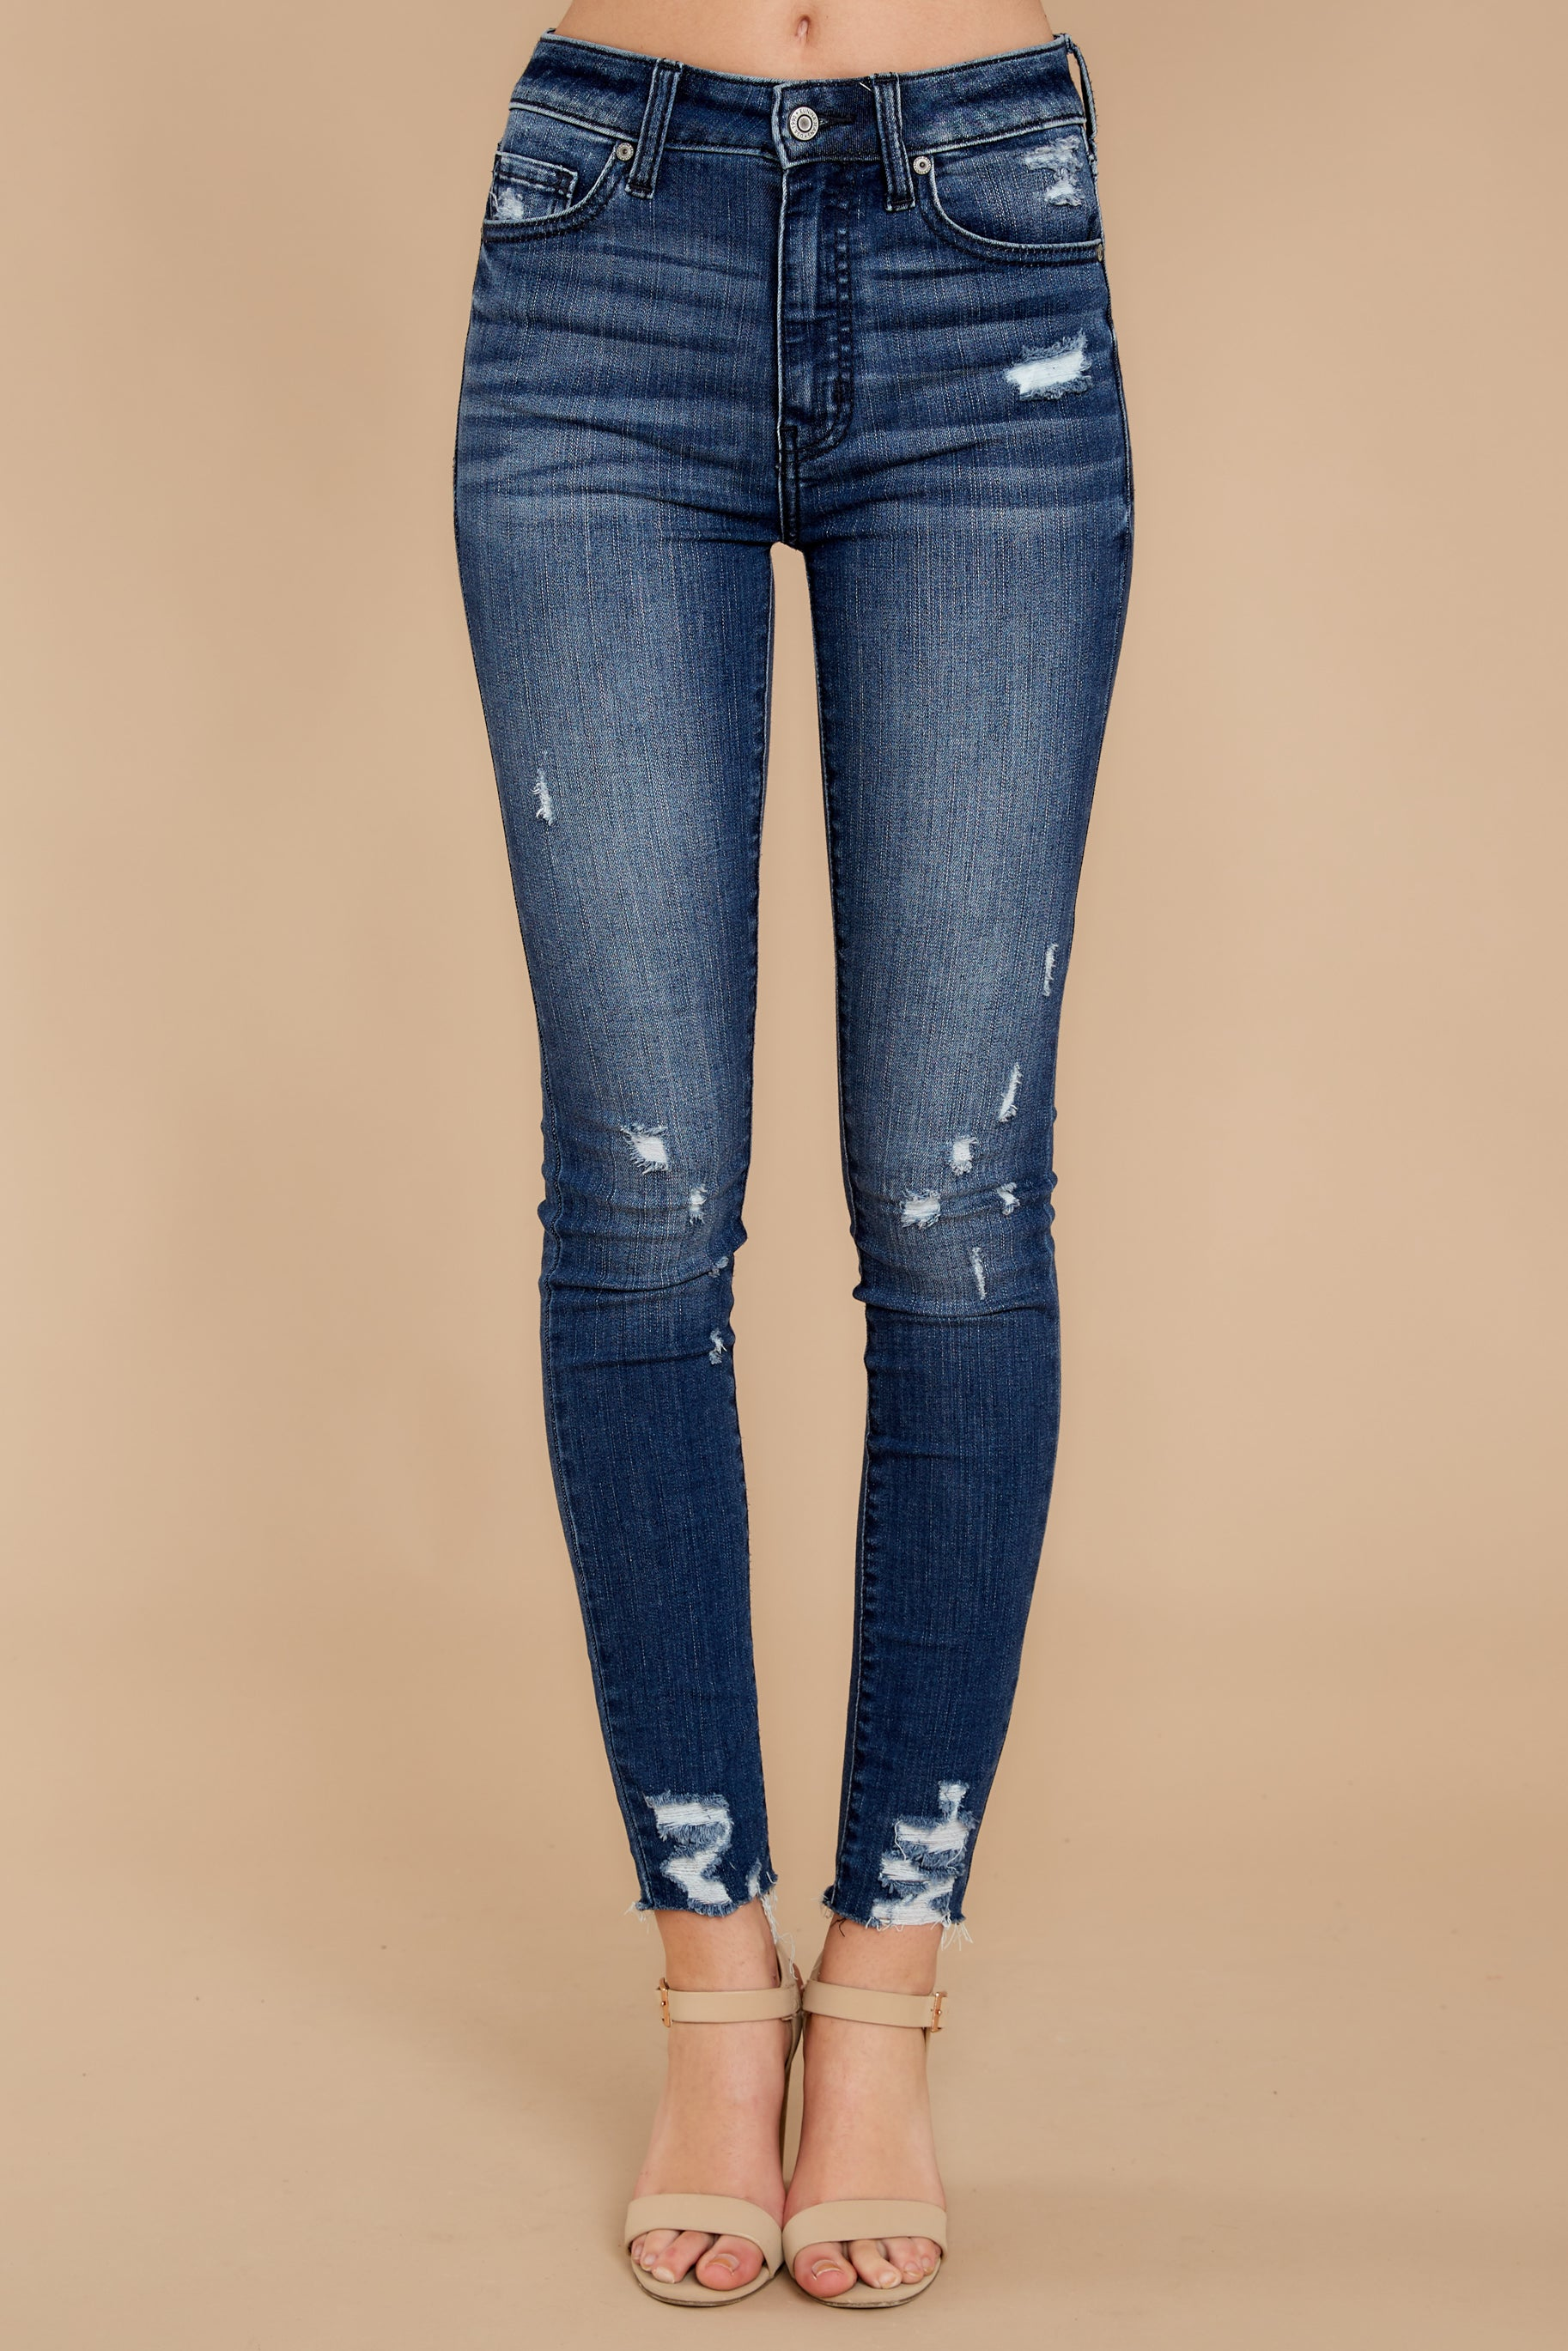 2 Downtown Feels Dark Wash Distressed Skinny Jeans at reddressboutique.com